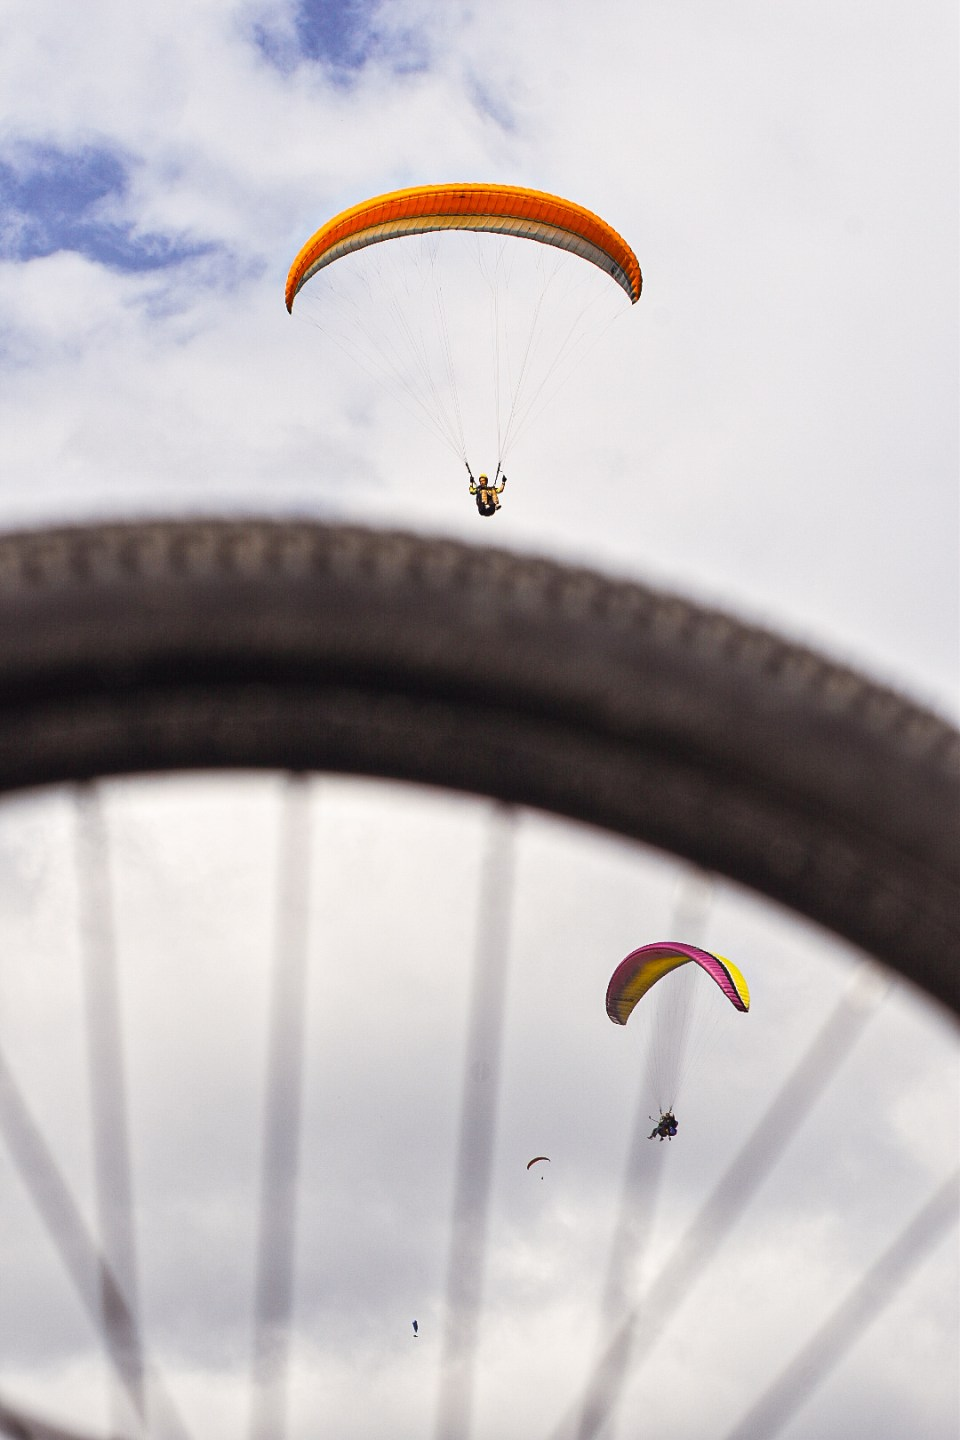 Paraglider landing on the Cycle Tire